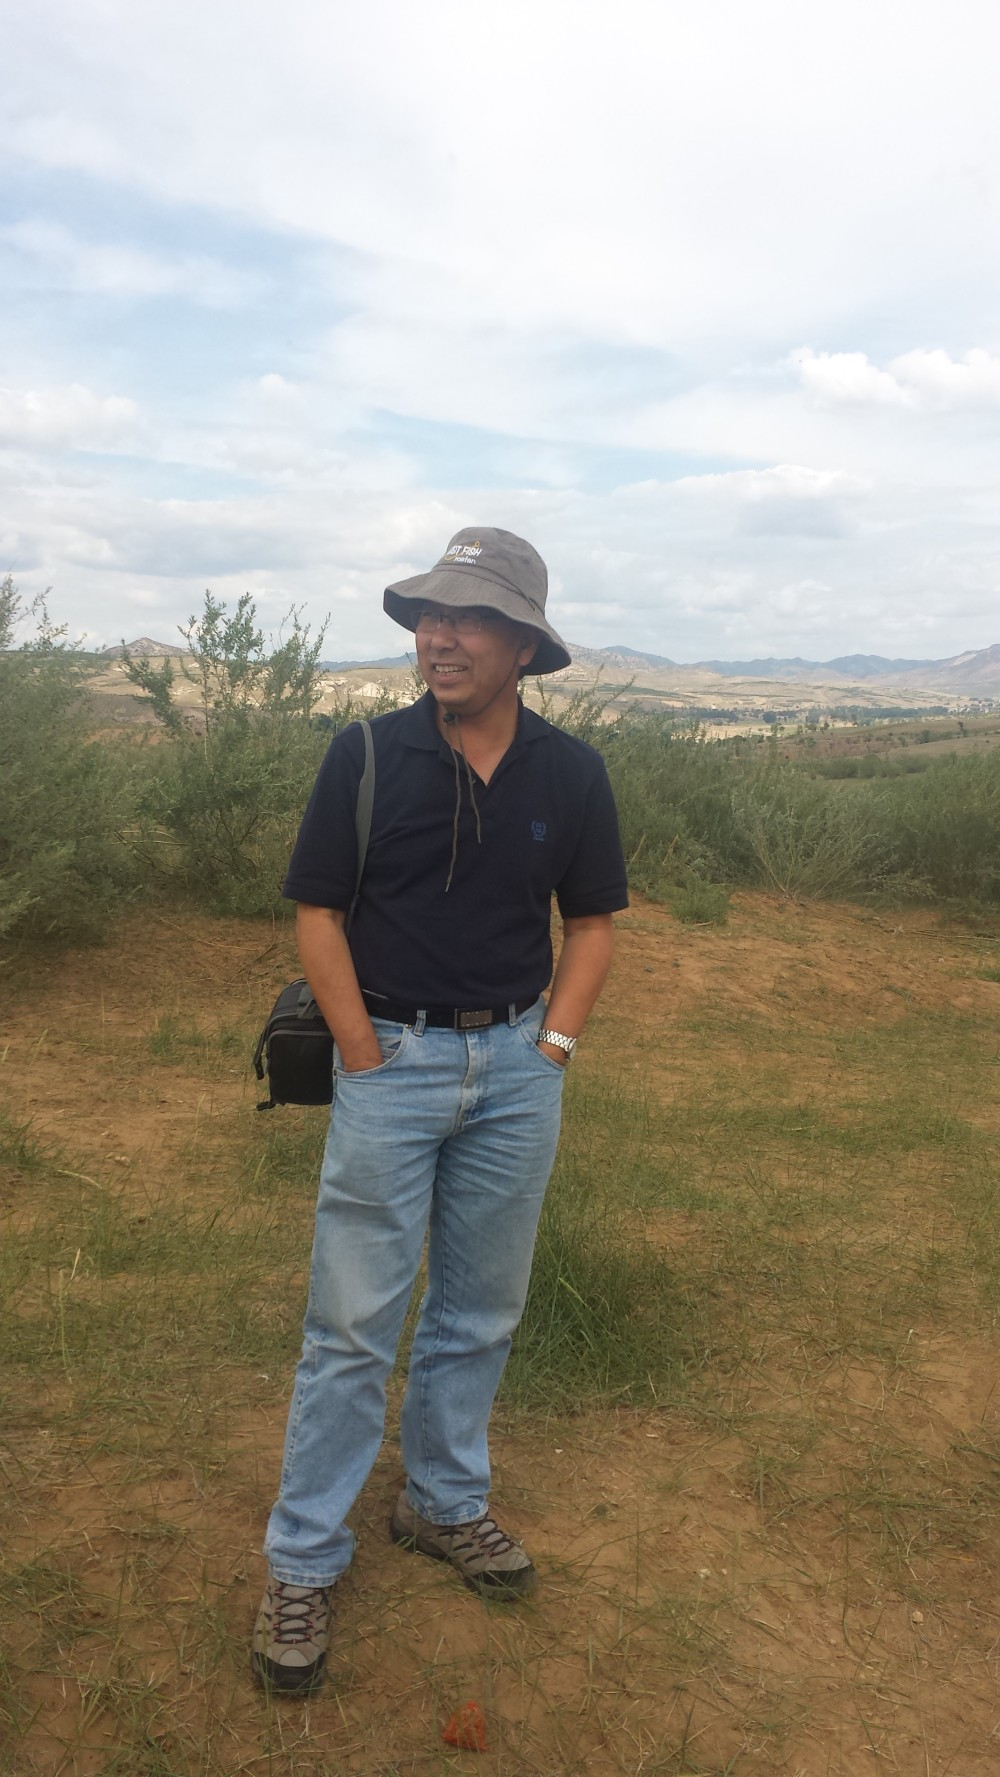 Dr. Liu, faculty director, at the Grasslands